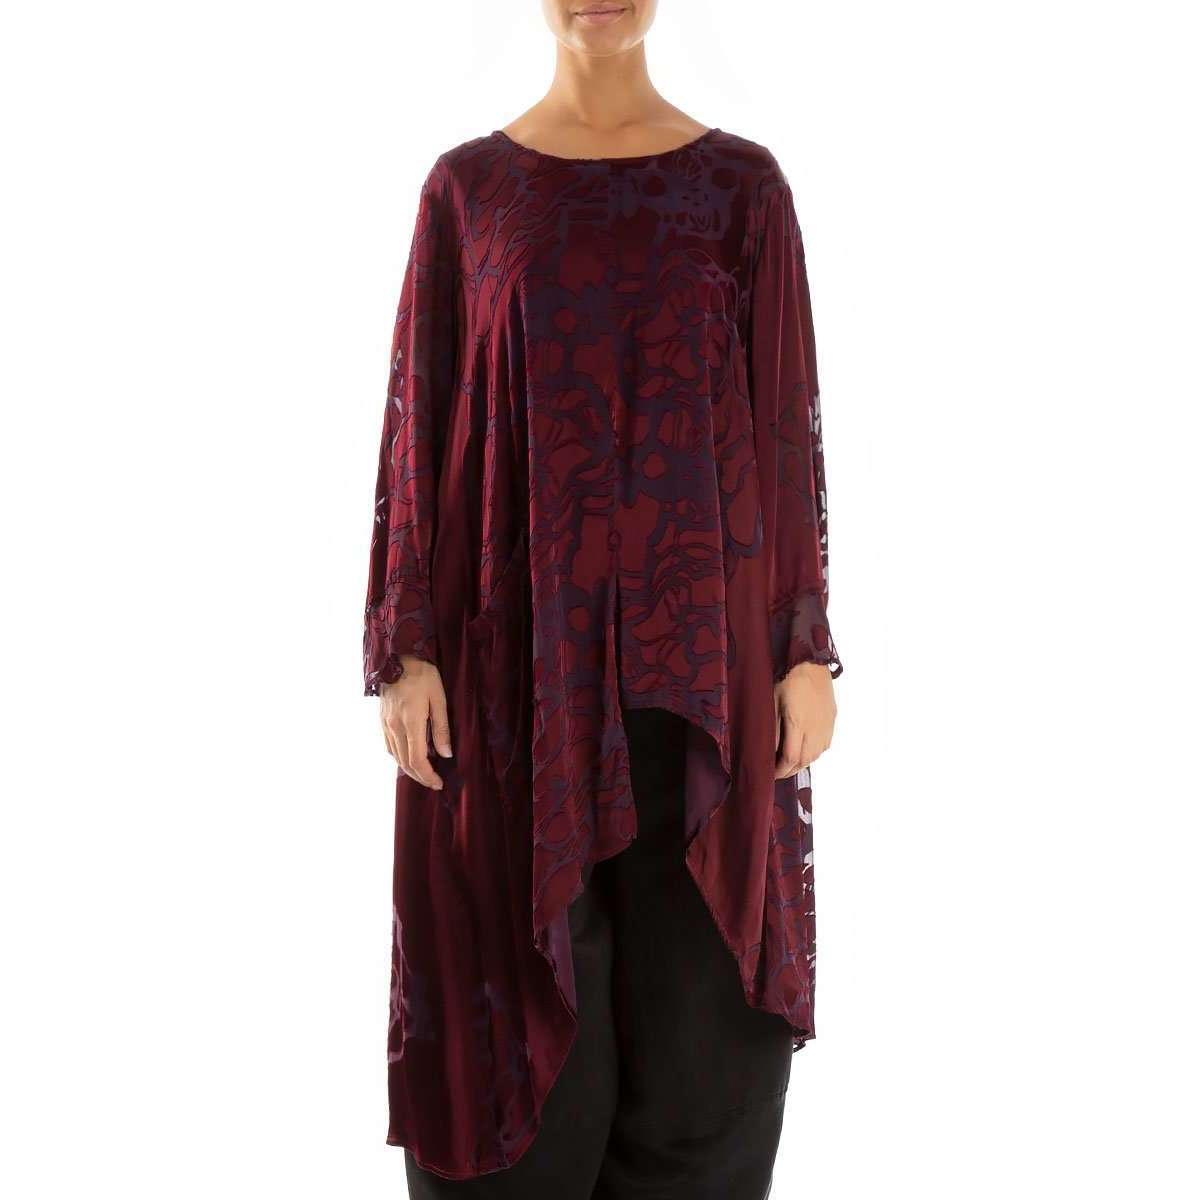 52235 Asymmetrical Floral pattern Wine Tunic